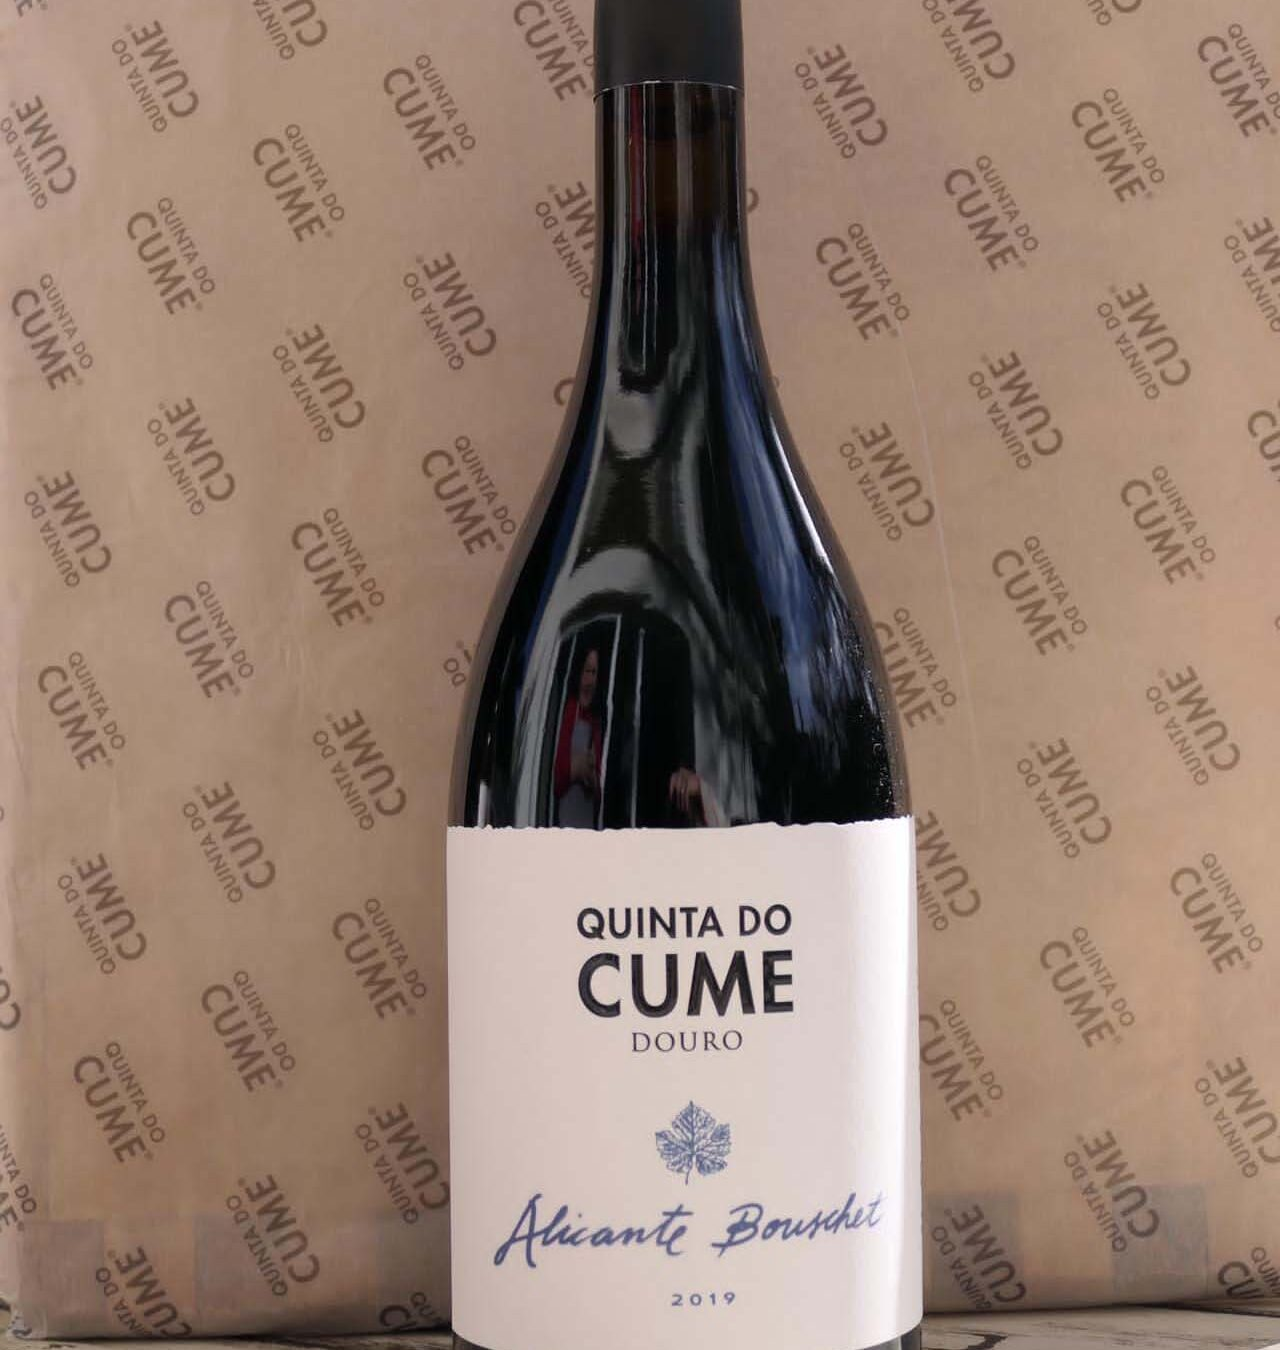 Quinta do Cume Alicante Bouschet